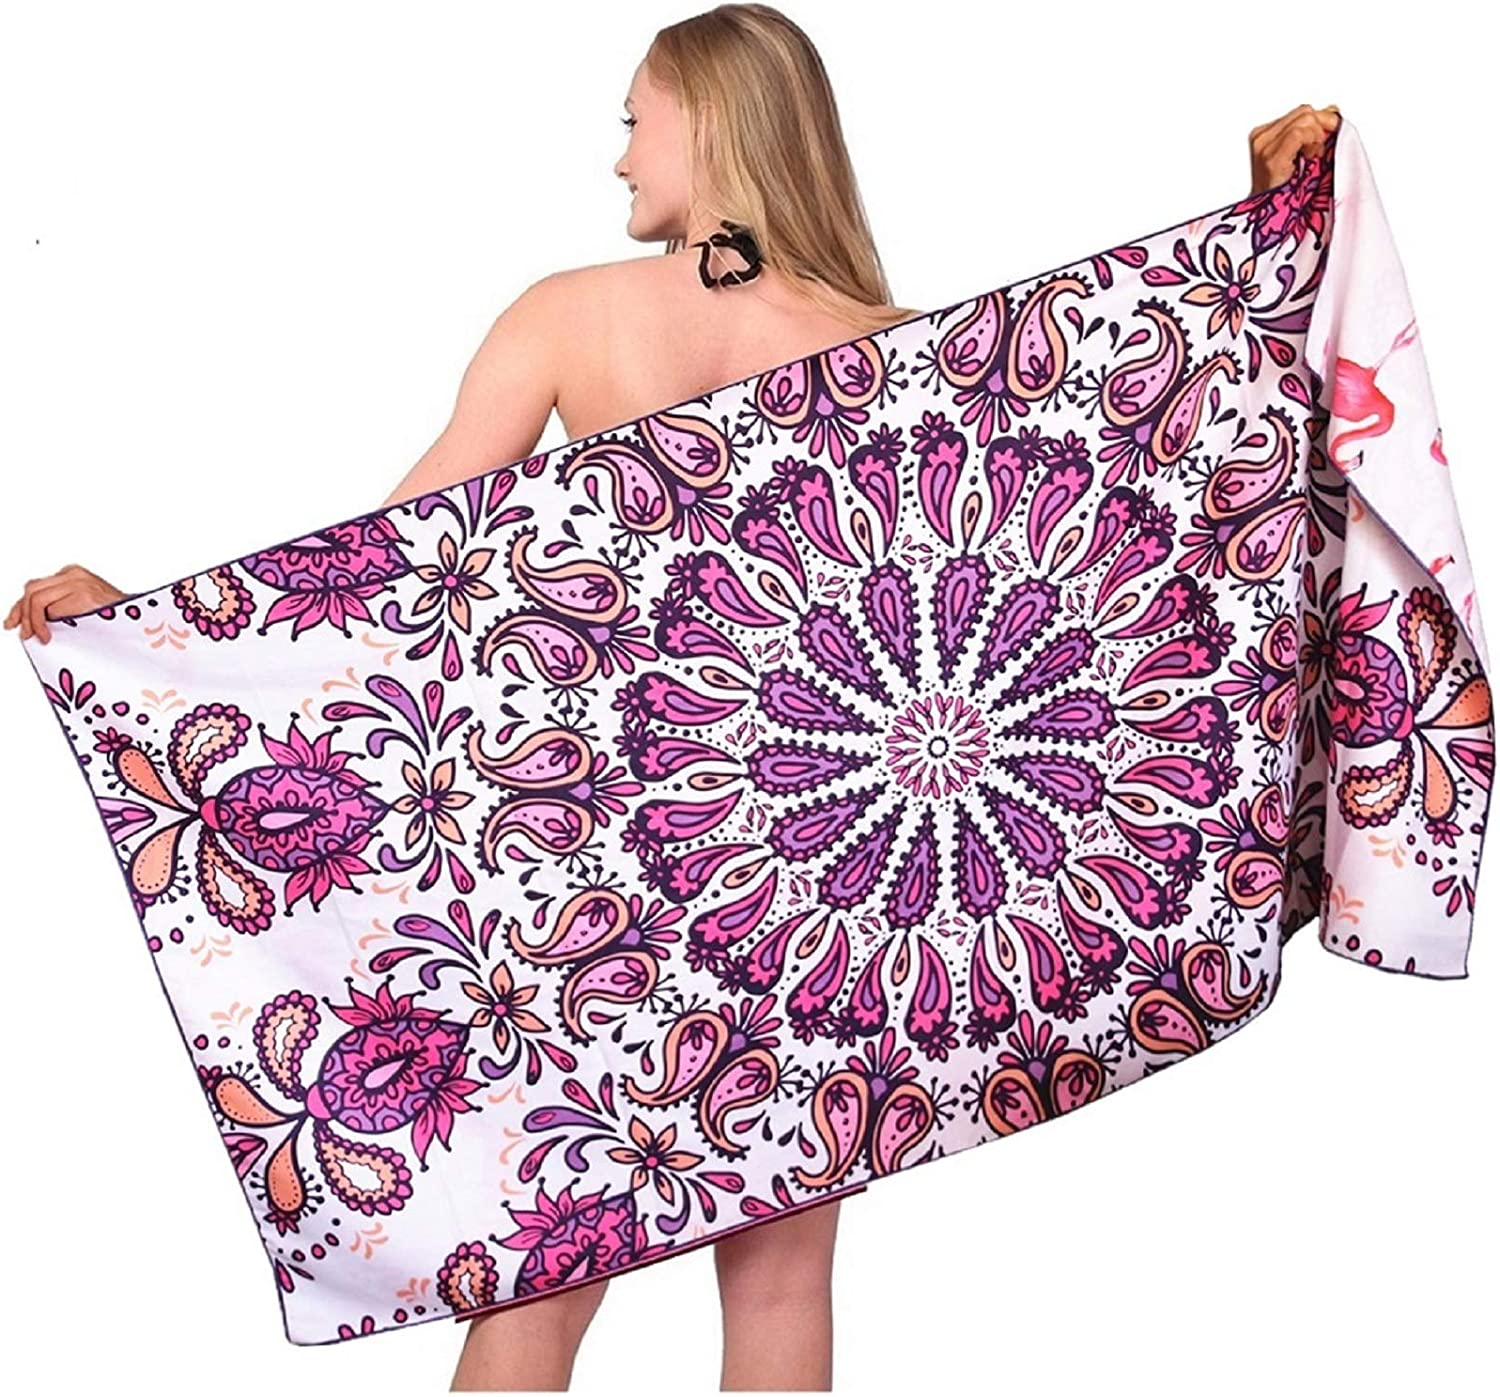 Mandala Oversized Microfiber Beach Towel-Quick Dry Super Absorbent Lightweight Thin Sand Free Towels